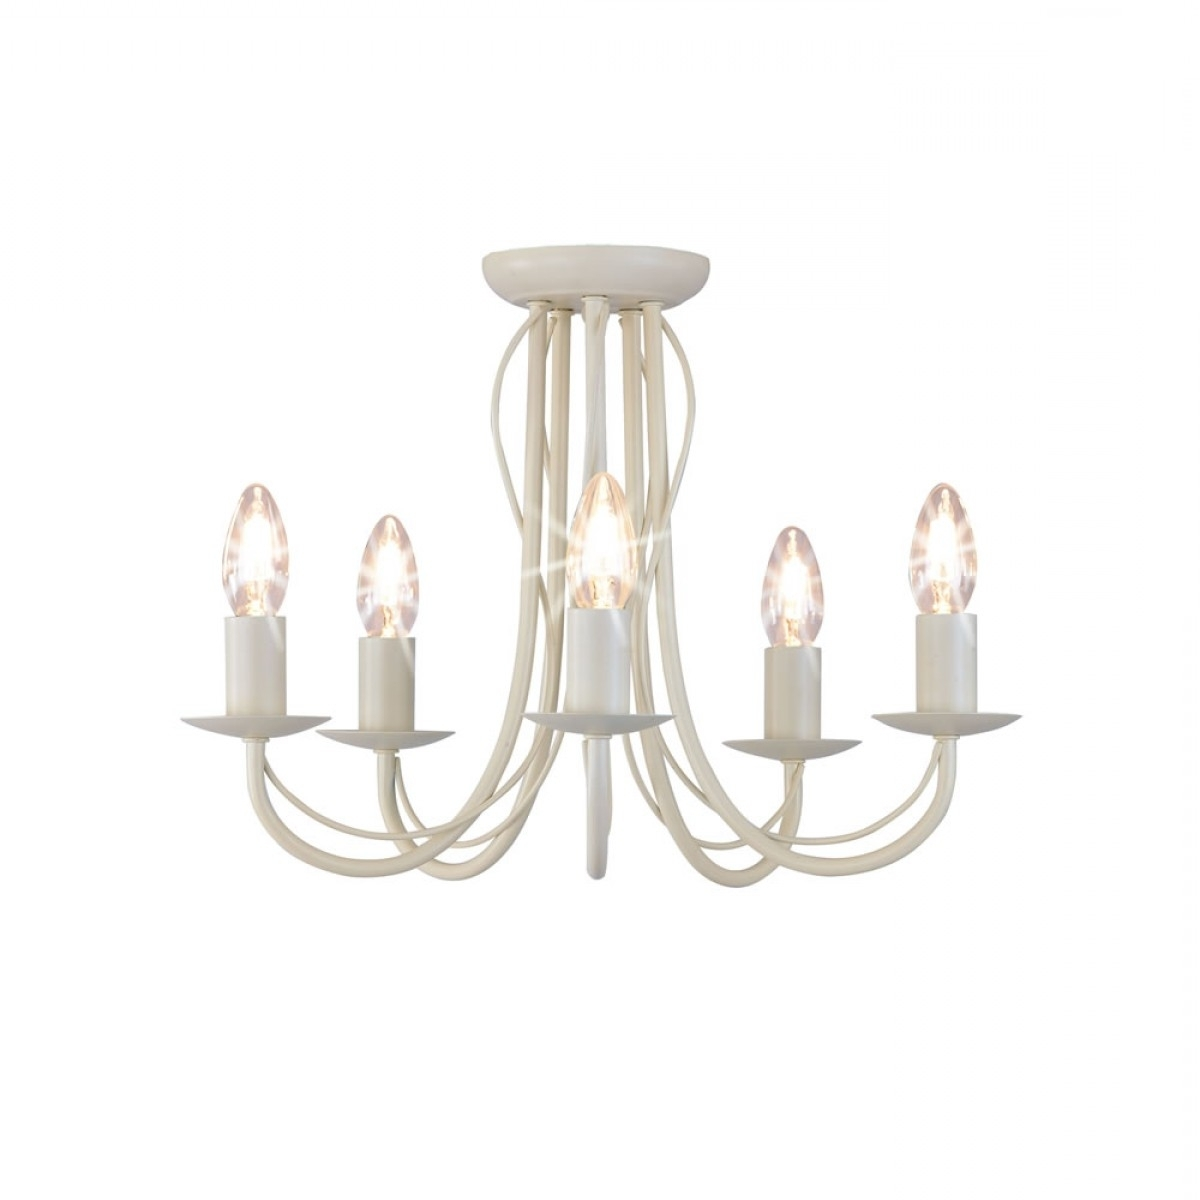 Most Popular Cream Chandelier Lights Throughout Arm Chandelier Metal Ceiling Light Fitting Cream (View 11 of 20)